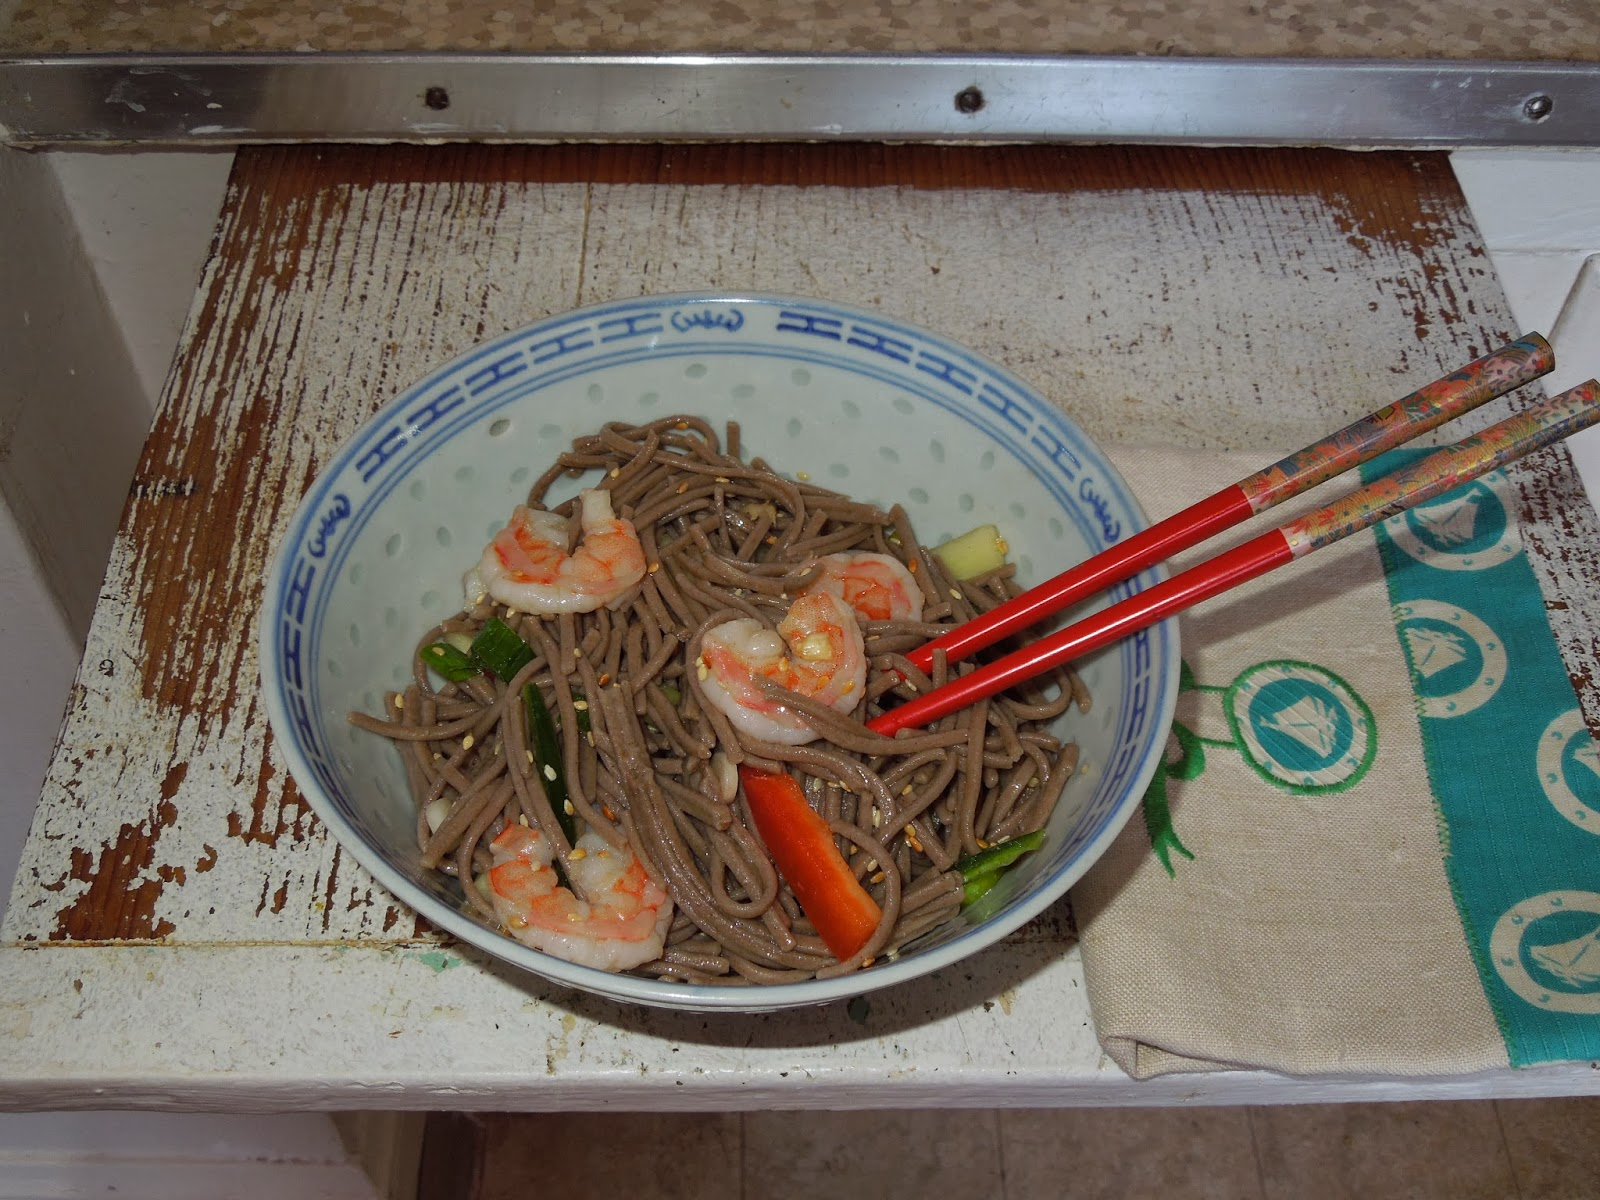 Pacific Rim Noodle Salad, Asian cooking, gluten free recipes, gluten free cooking.